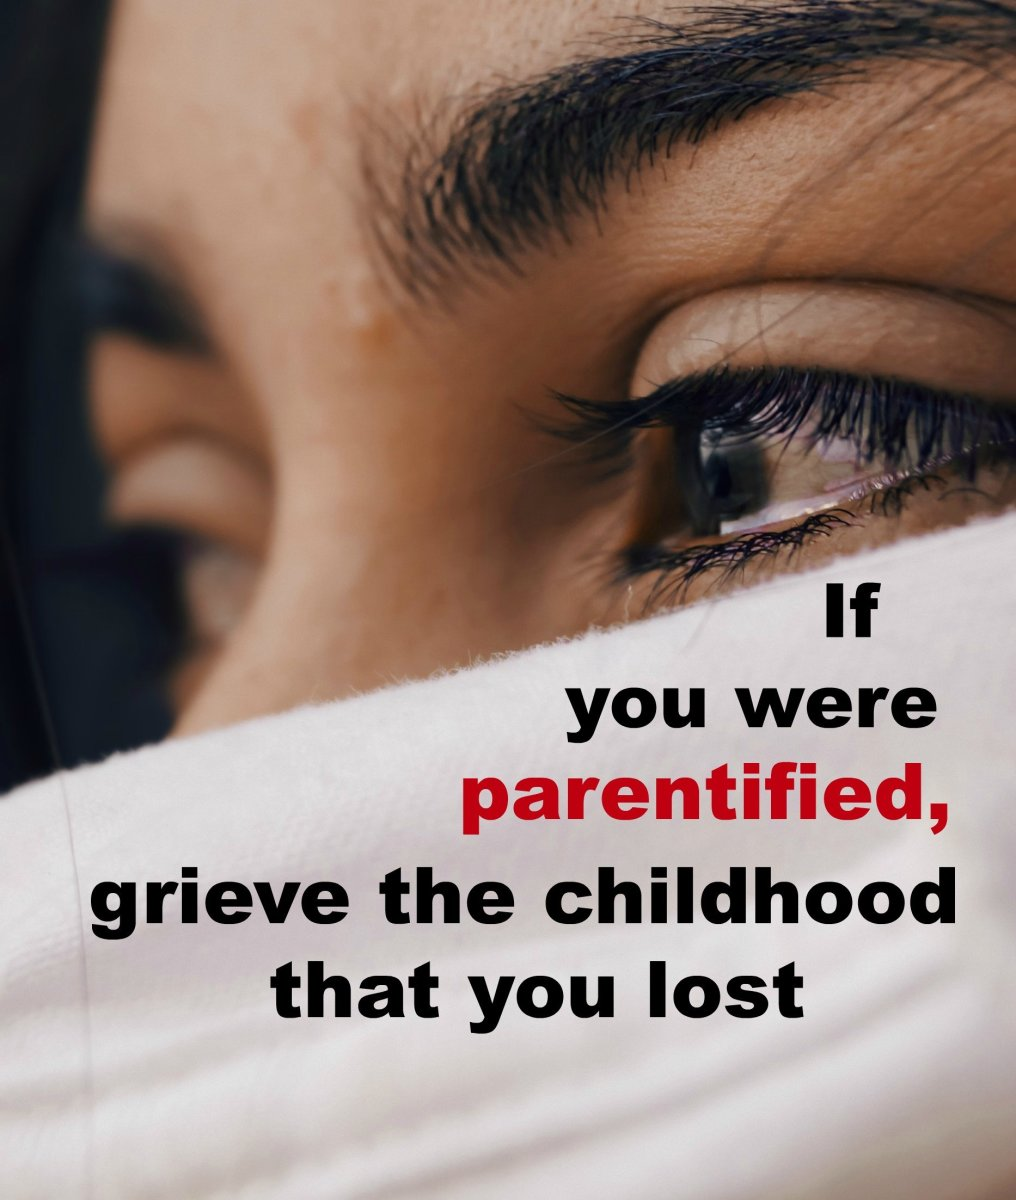 When an adult realizes that they were parentified and missed out on a carefree childhood, they may become sad or angry.